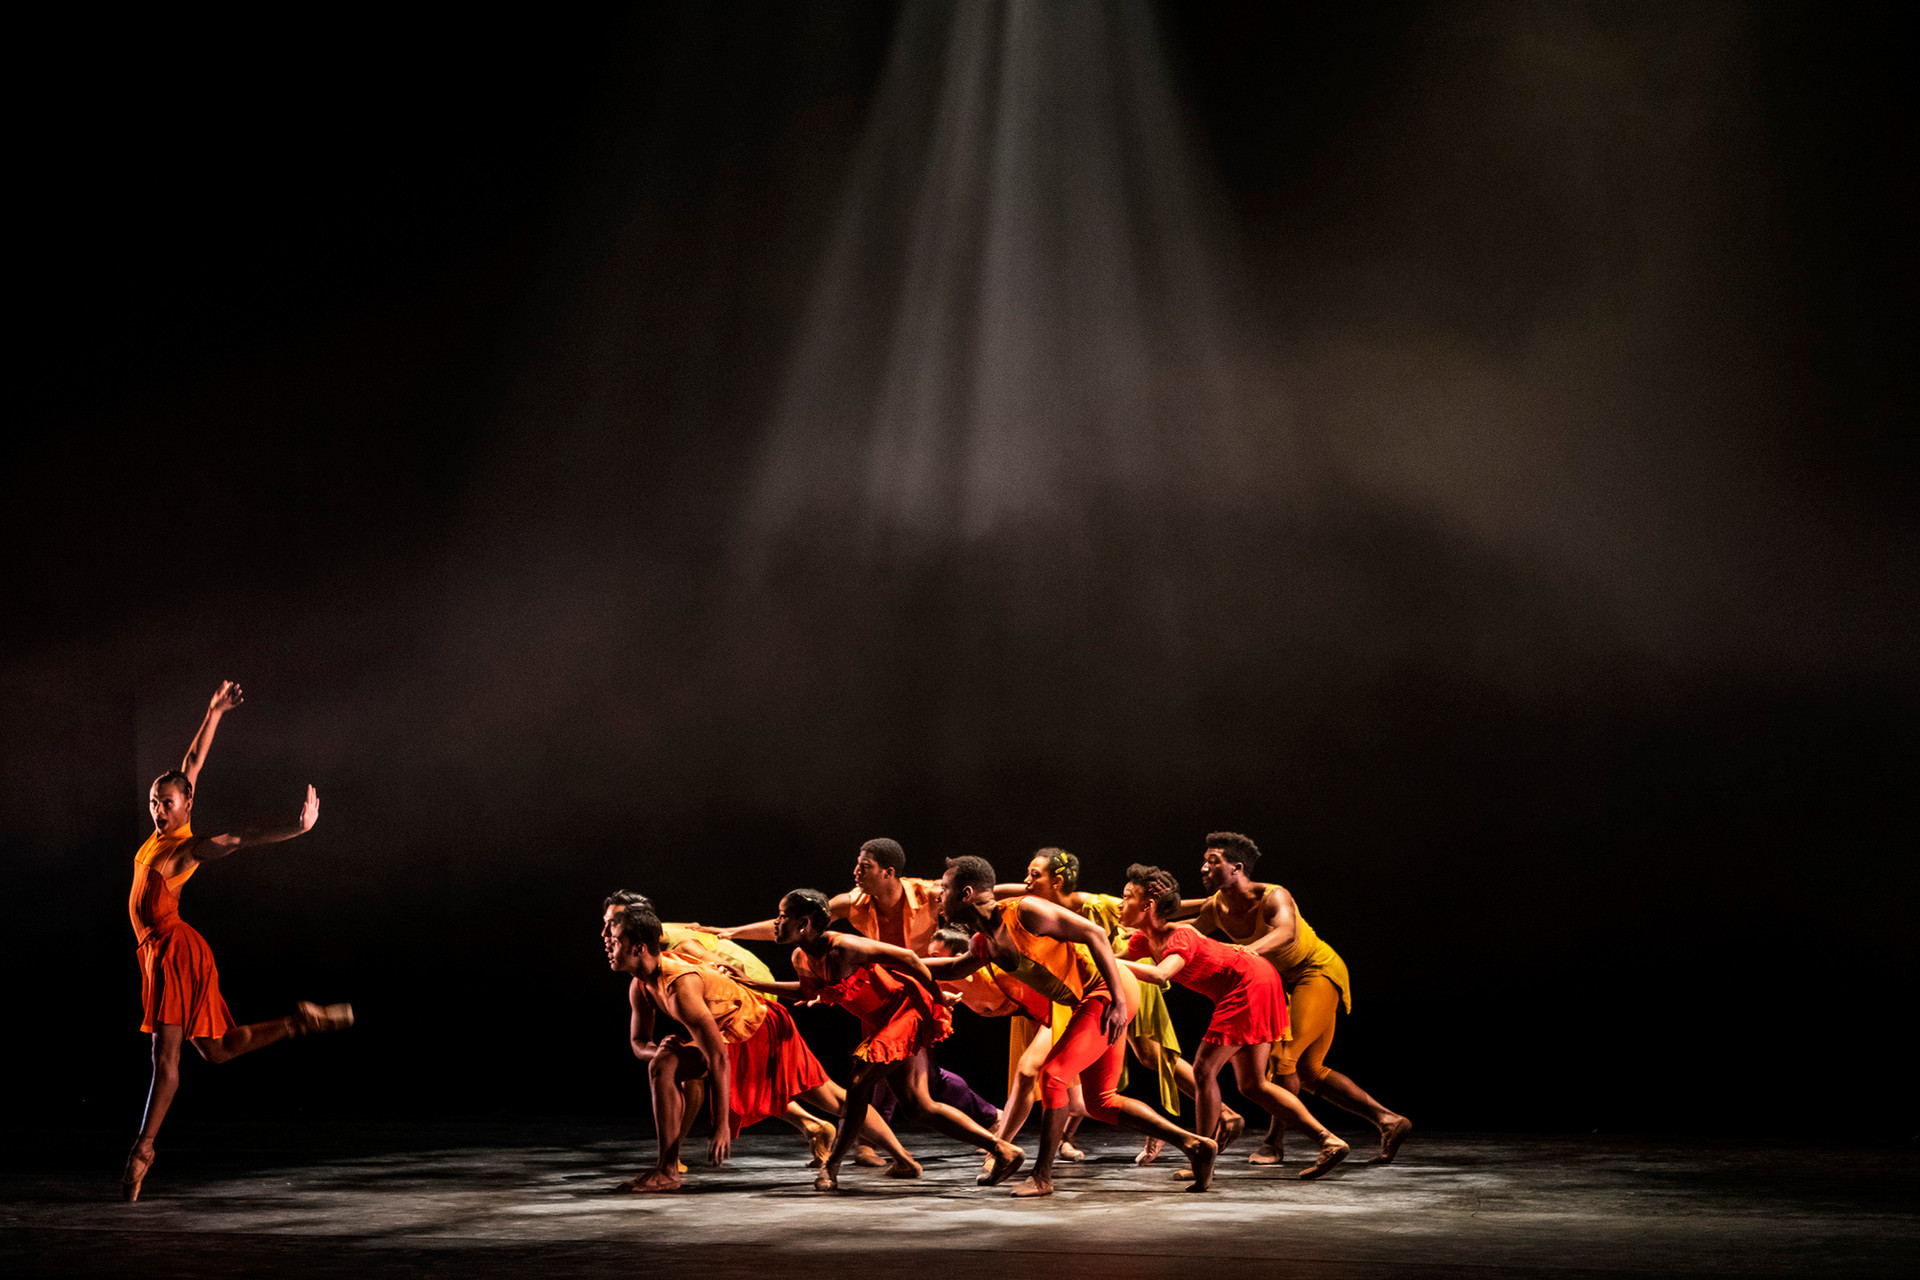 """Daphne Lee of the Dance Theatre of Harlem, left, strikes a pose as she rehearses with her fellow Dance Theatre of Harlem dancers for their performance of """"Balamouk"""" for their upcoming collaborative show with the Pittsburgh Ballet Theatre  during a dress rehearsal, Wednesday, March 13, 2019, at the August Wilson Cultural Center in Downtown."""